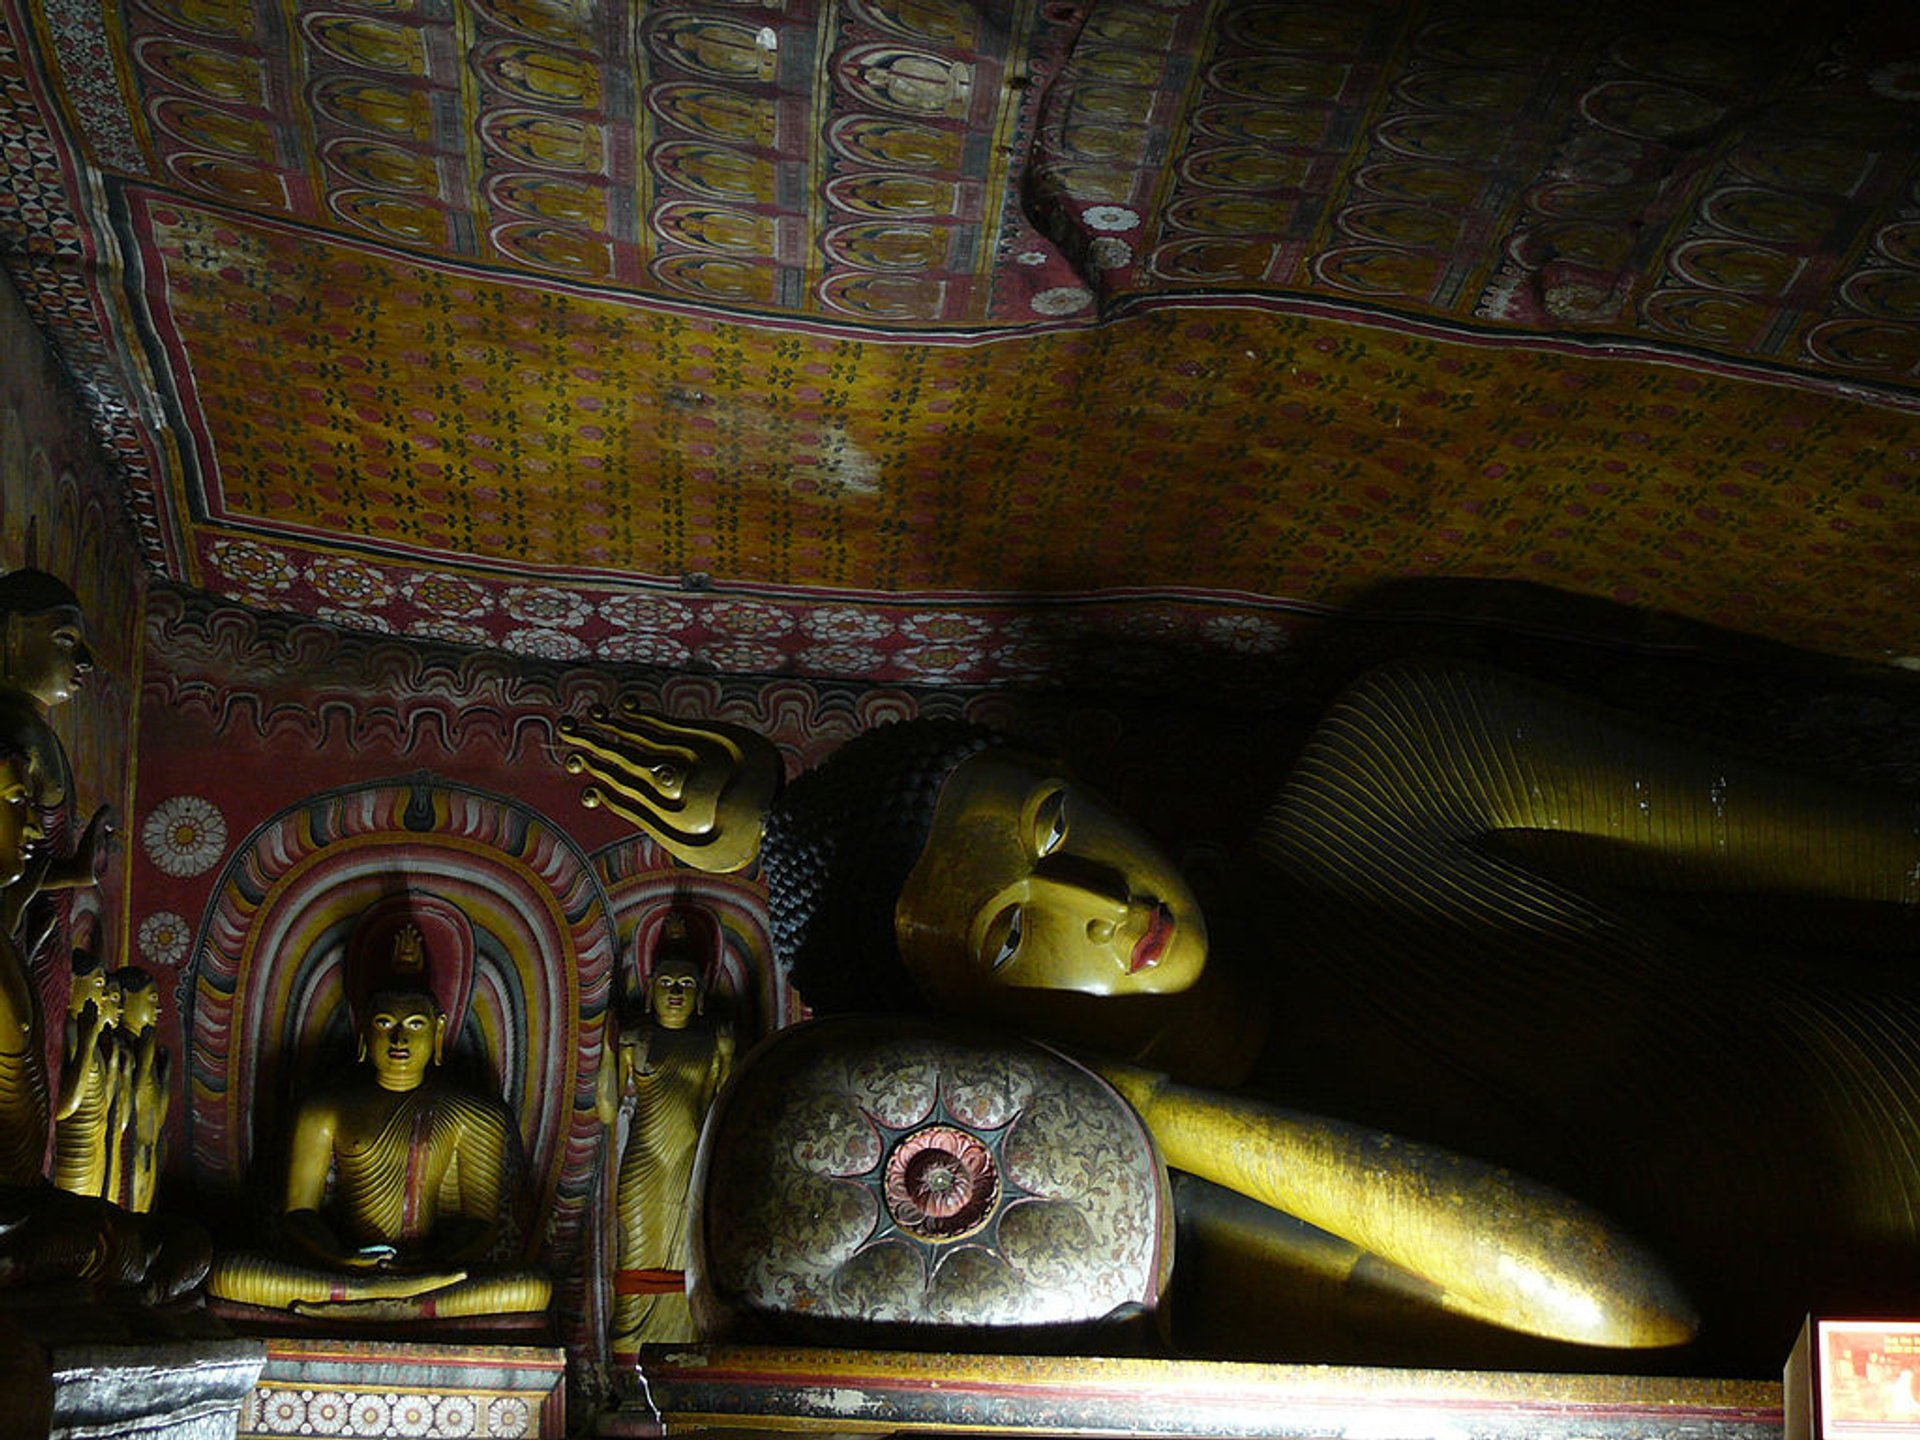 Image of a reclining Buddha in Dambulla complex of cave monasteries 2020